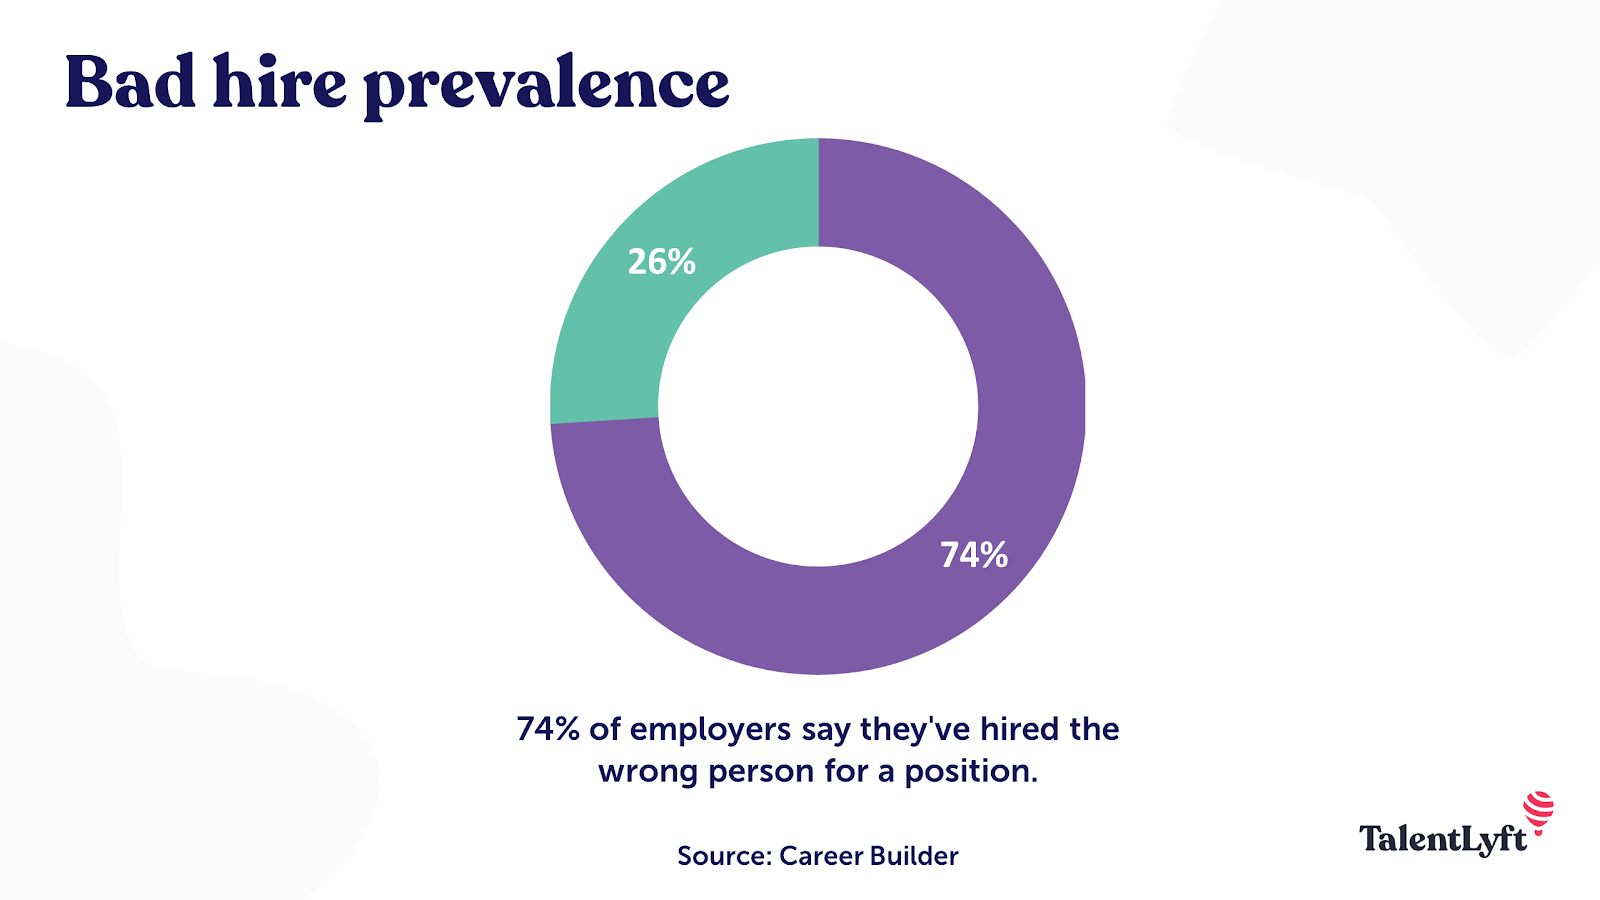 Bad-hire-prevalence-statistic